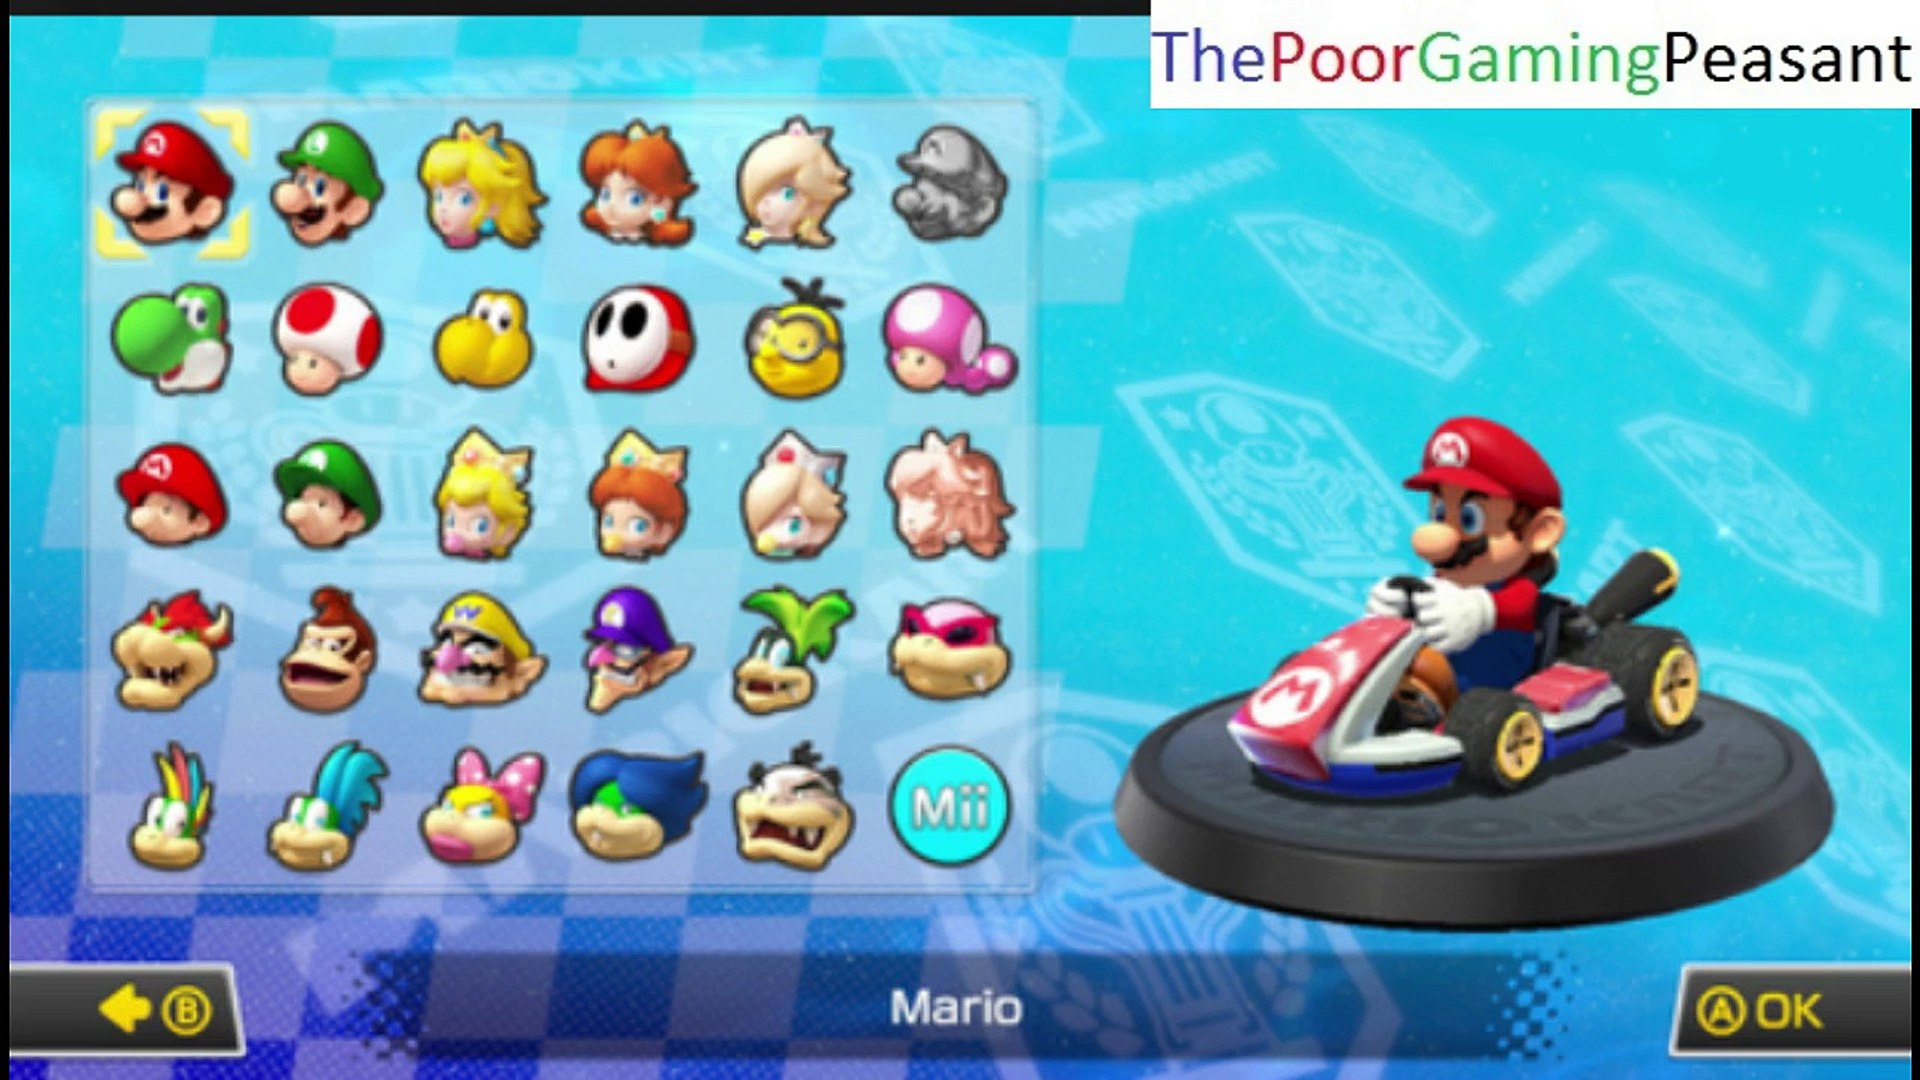 Tutorial For How To Unlock All The Default Secret Characters In Mario Kart 8 For The Wii U